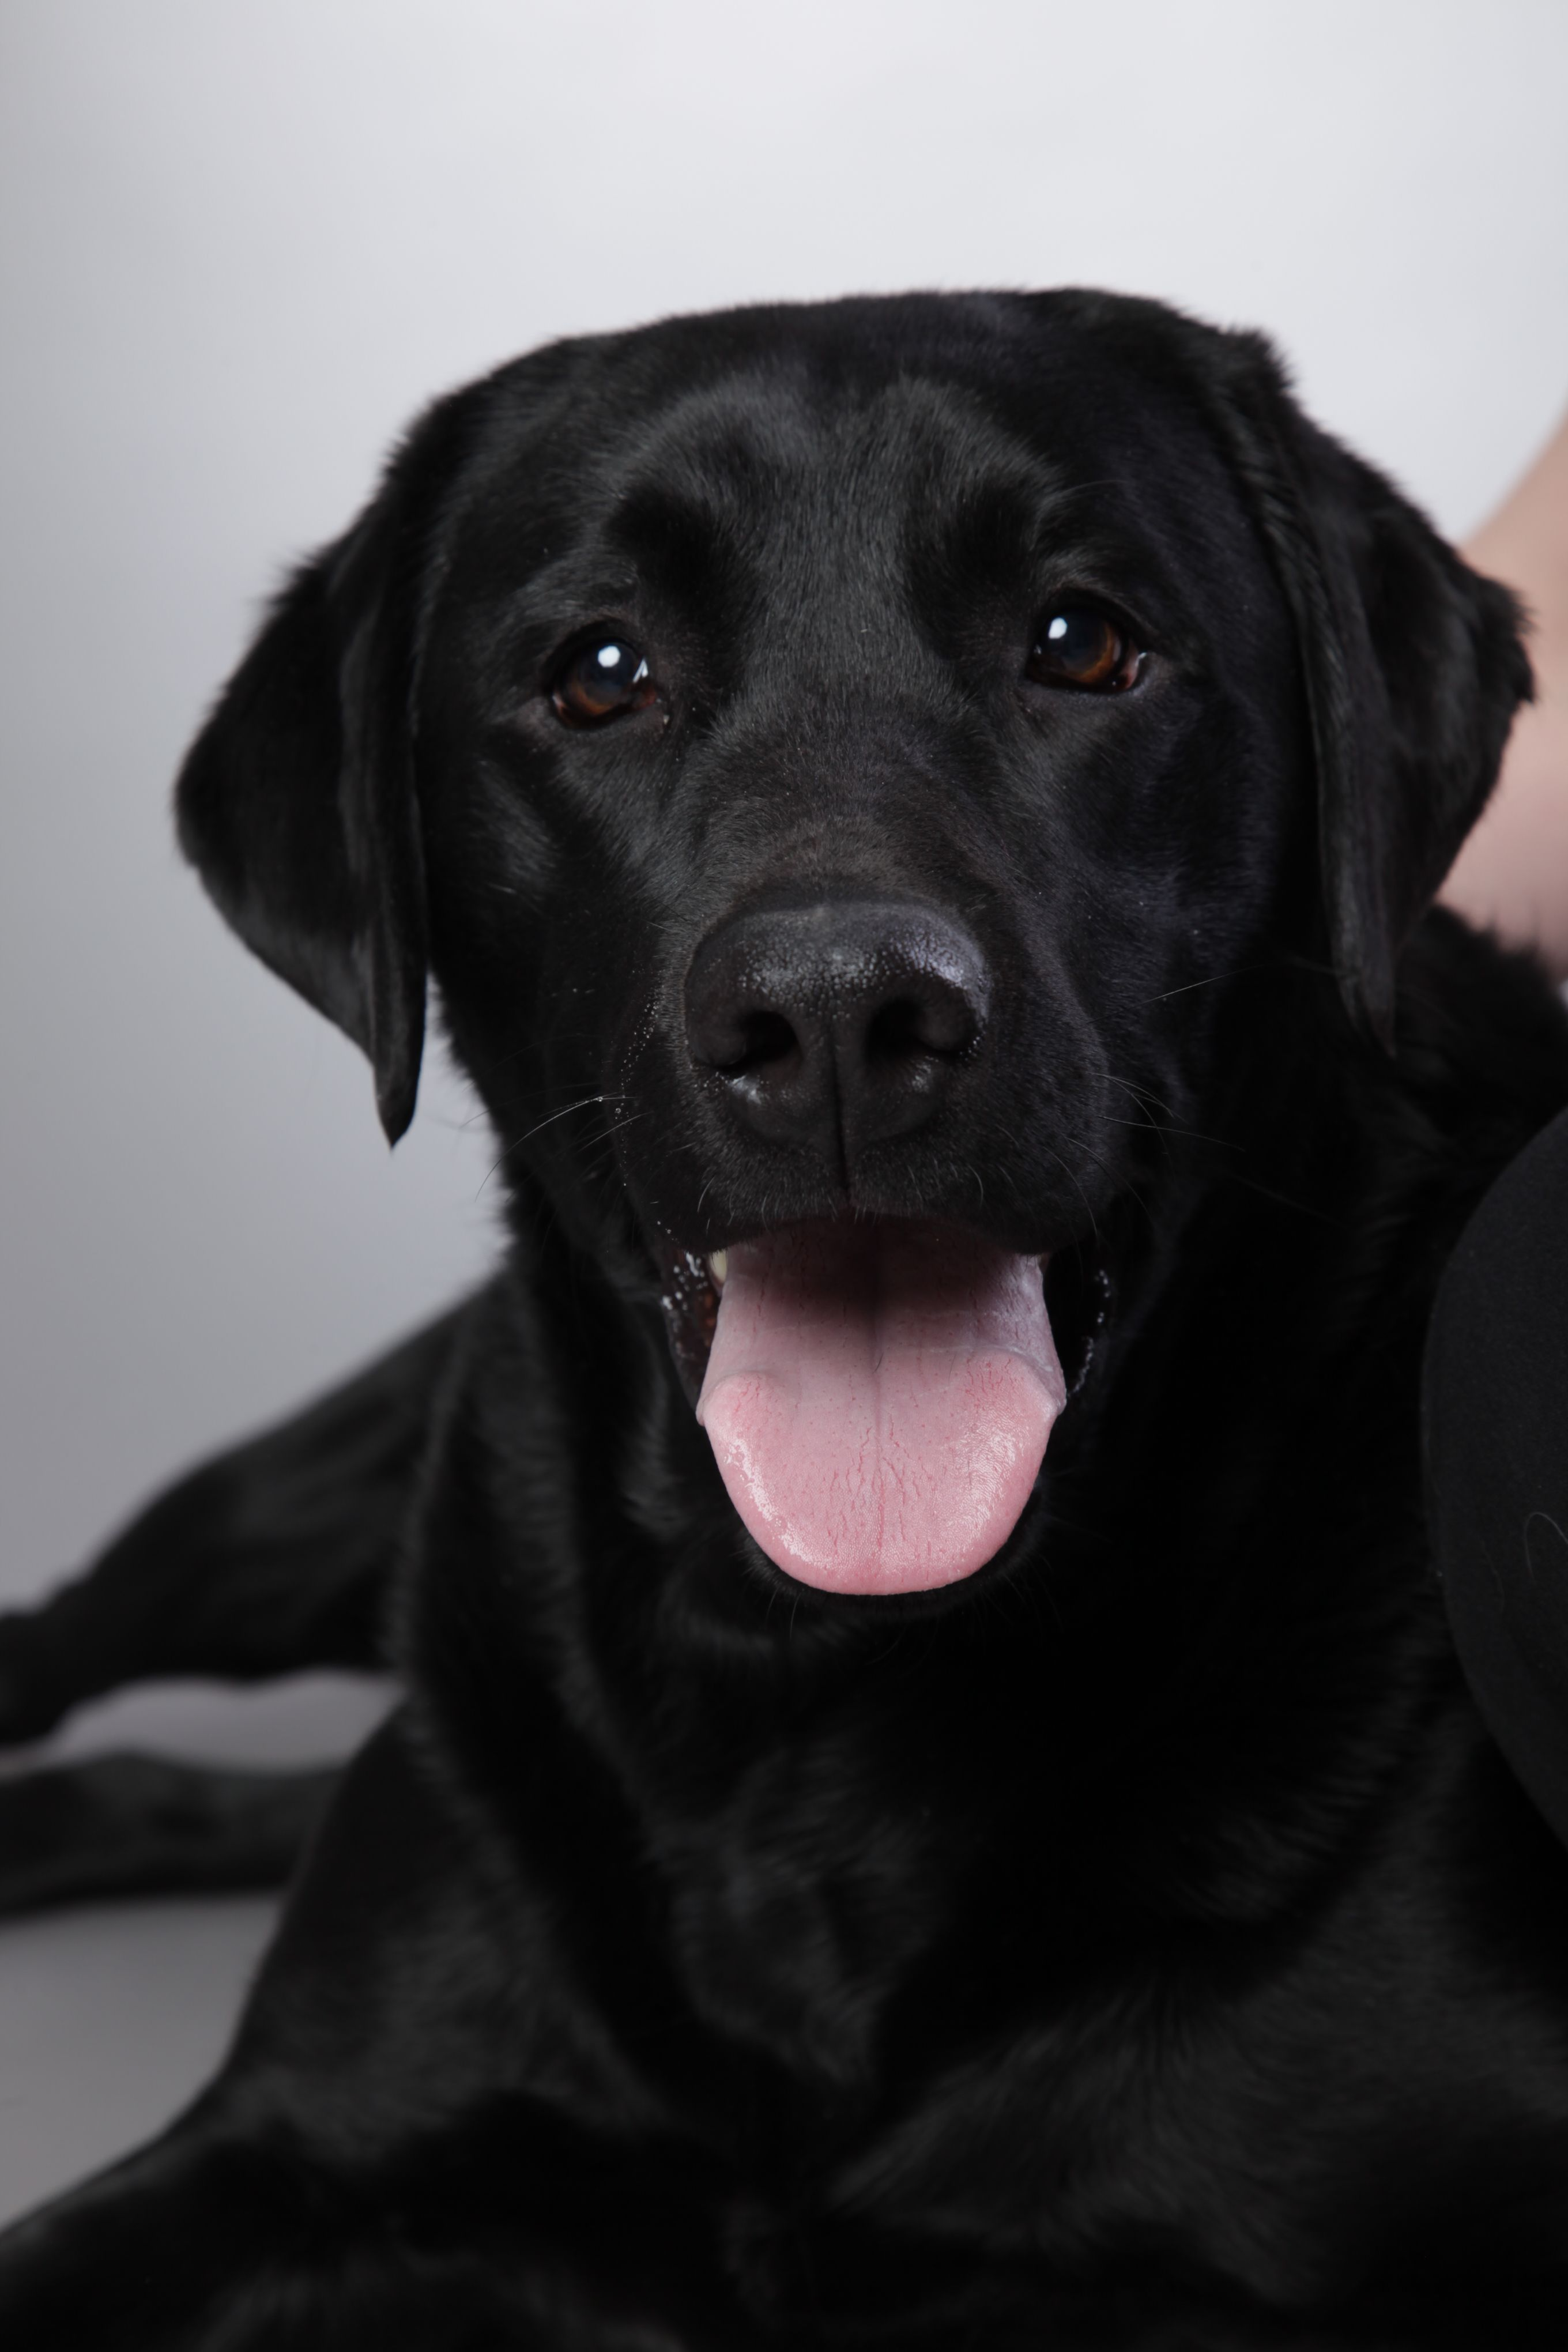 #retrievers #retriever #labrador #amazing #puppies #facts #about #ideas #and #lab10+ Amazing Facts About Labrador Retrievers And Ideas Lab Puppies LABRADOR RETRIEVERLab Puppies LABRADOR RETRIEVER #labradorretriever #labradorretrieverpuppies